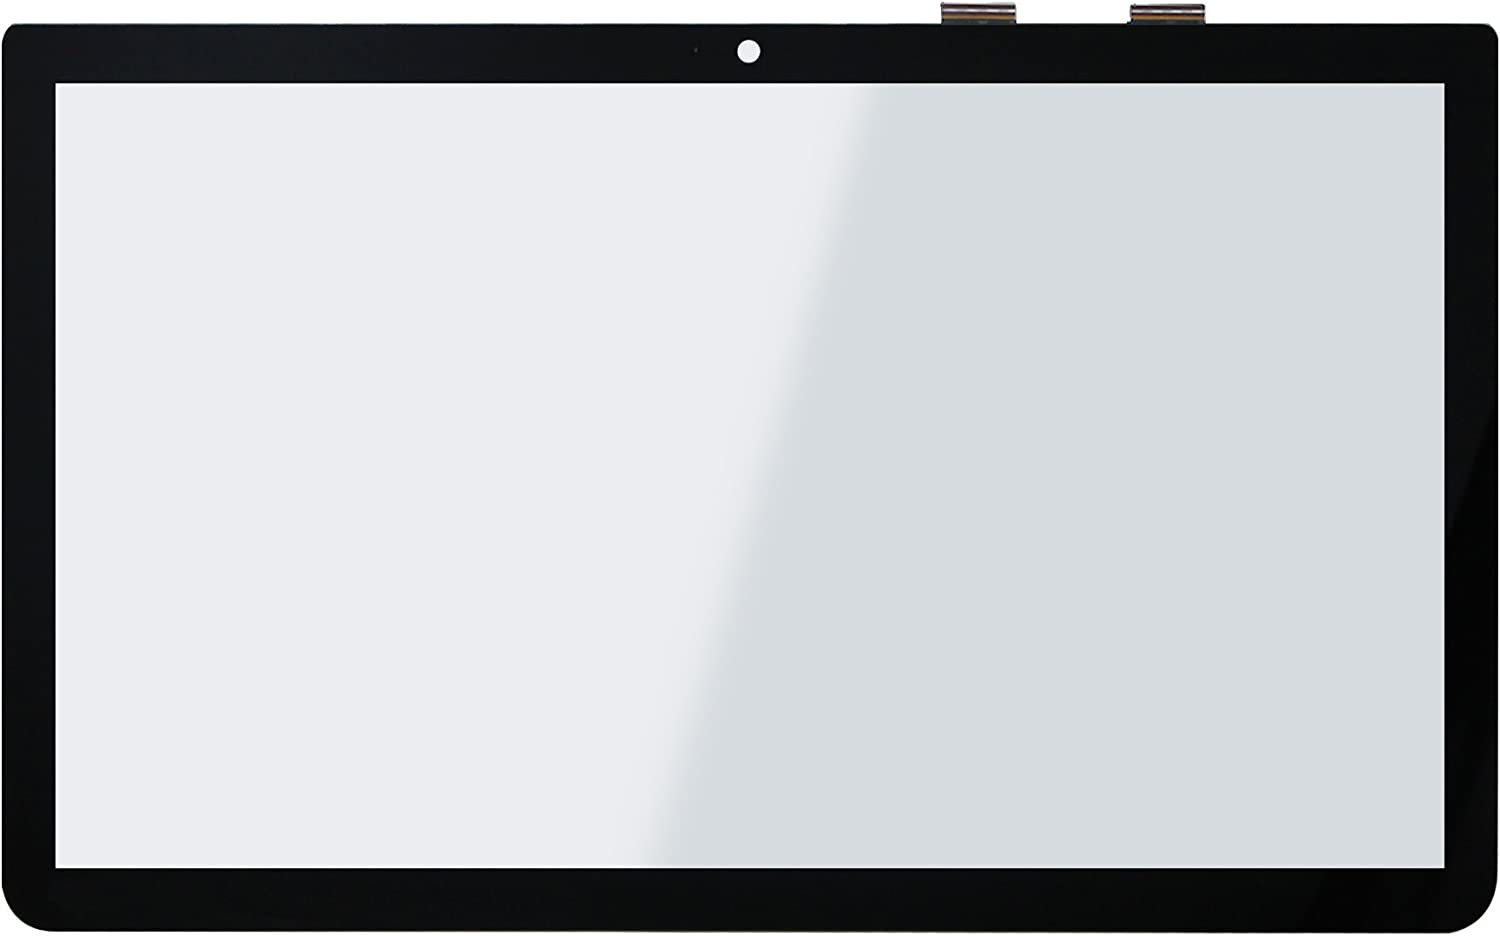 LCDOLED Compatible 15.6 inch Touch Screen Digitizer Front Glass Replacement for Toshiba Satellite C55T-B Series C55T-B5230 C55T-B5109 C55T-B5355 C55T-B5110 C55T-B5380 C55T-B5286 (No Bezel)